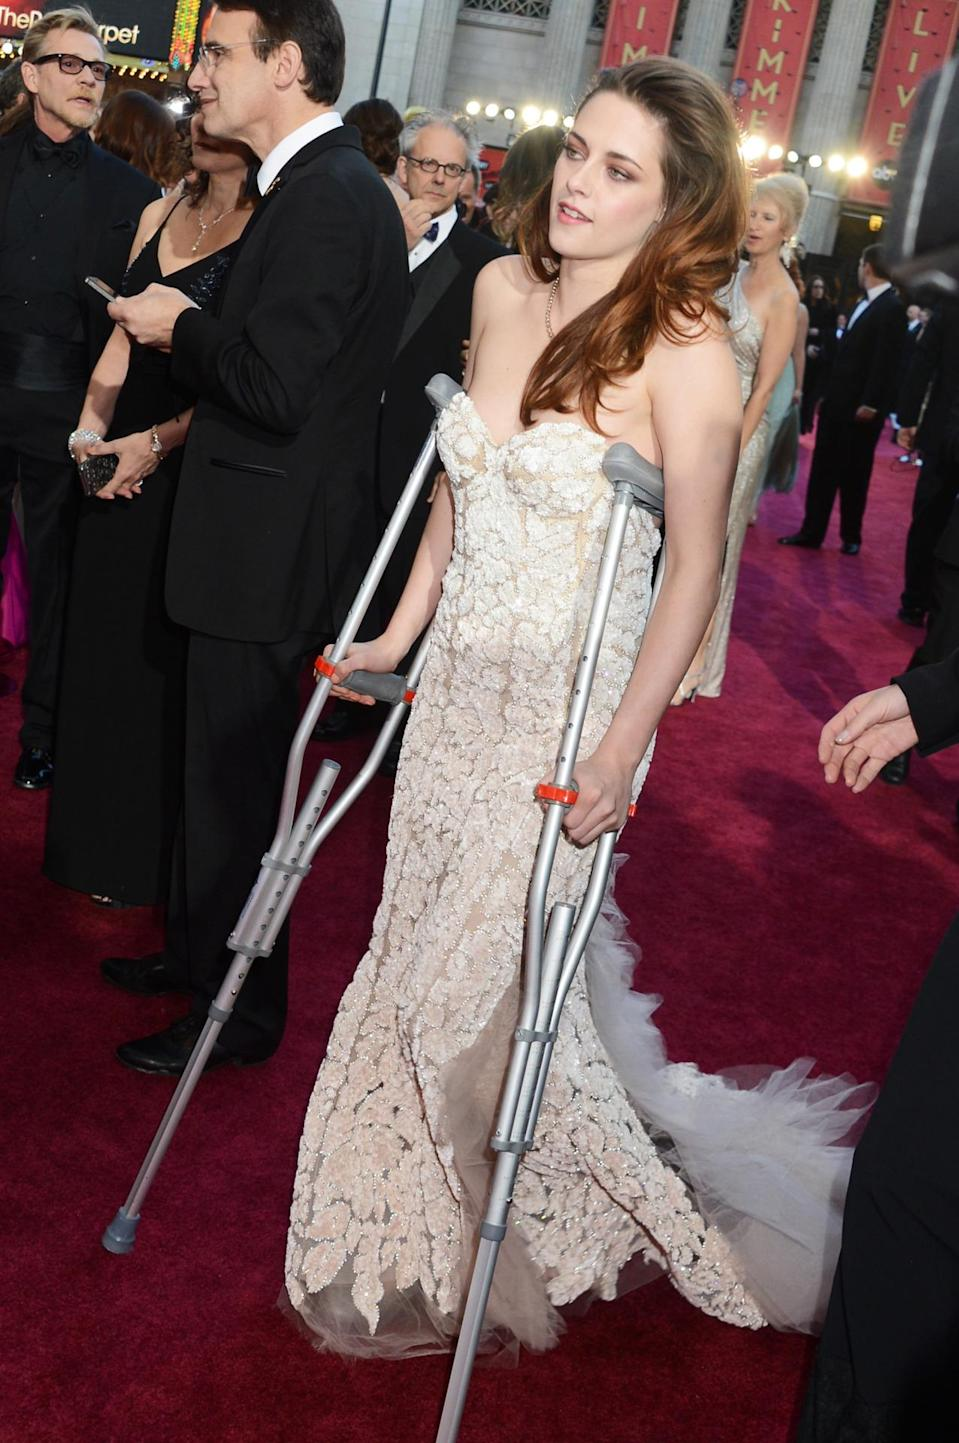 <p>She might have ditched them later, but it is a total boss move to show up at the Oscars on crutches. <i>(Photo: Getty)</i><br></p>